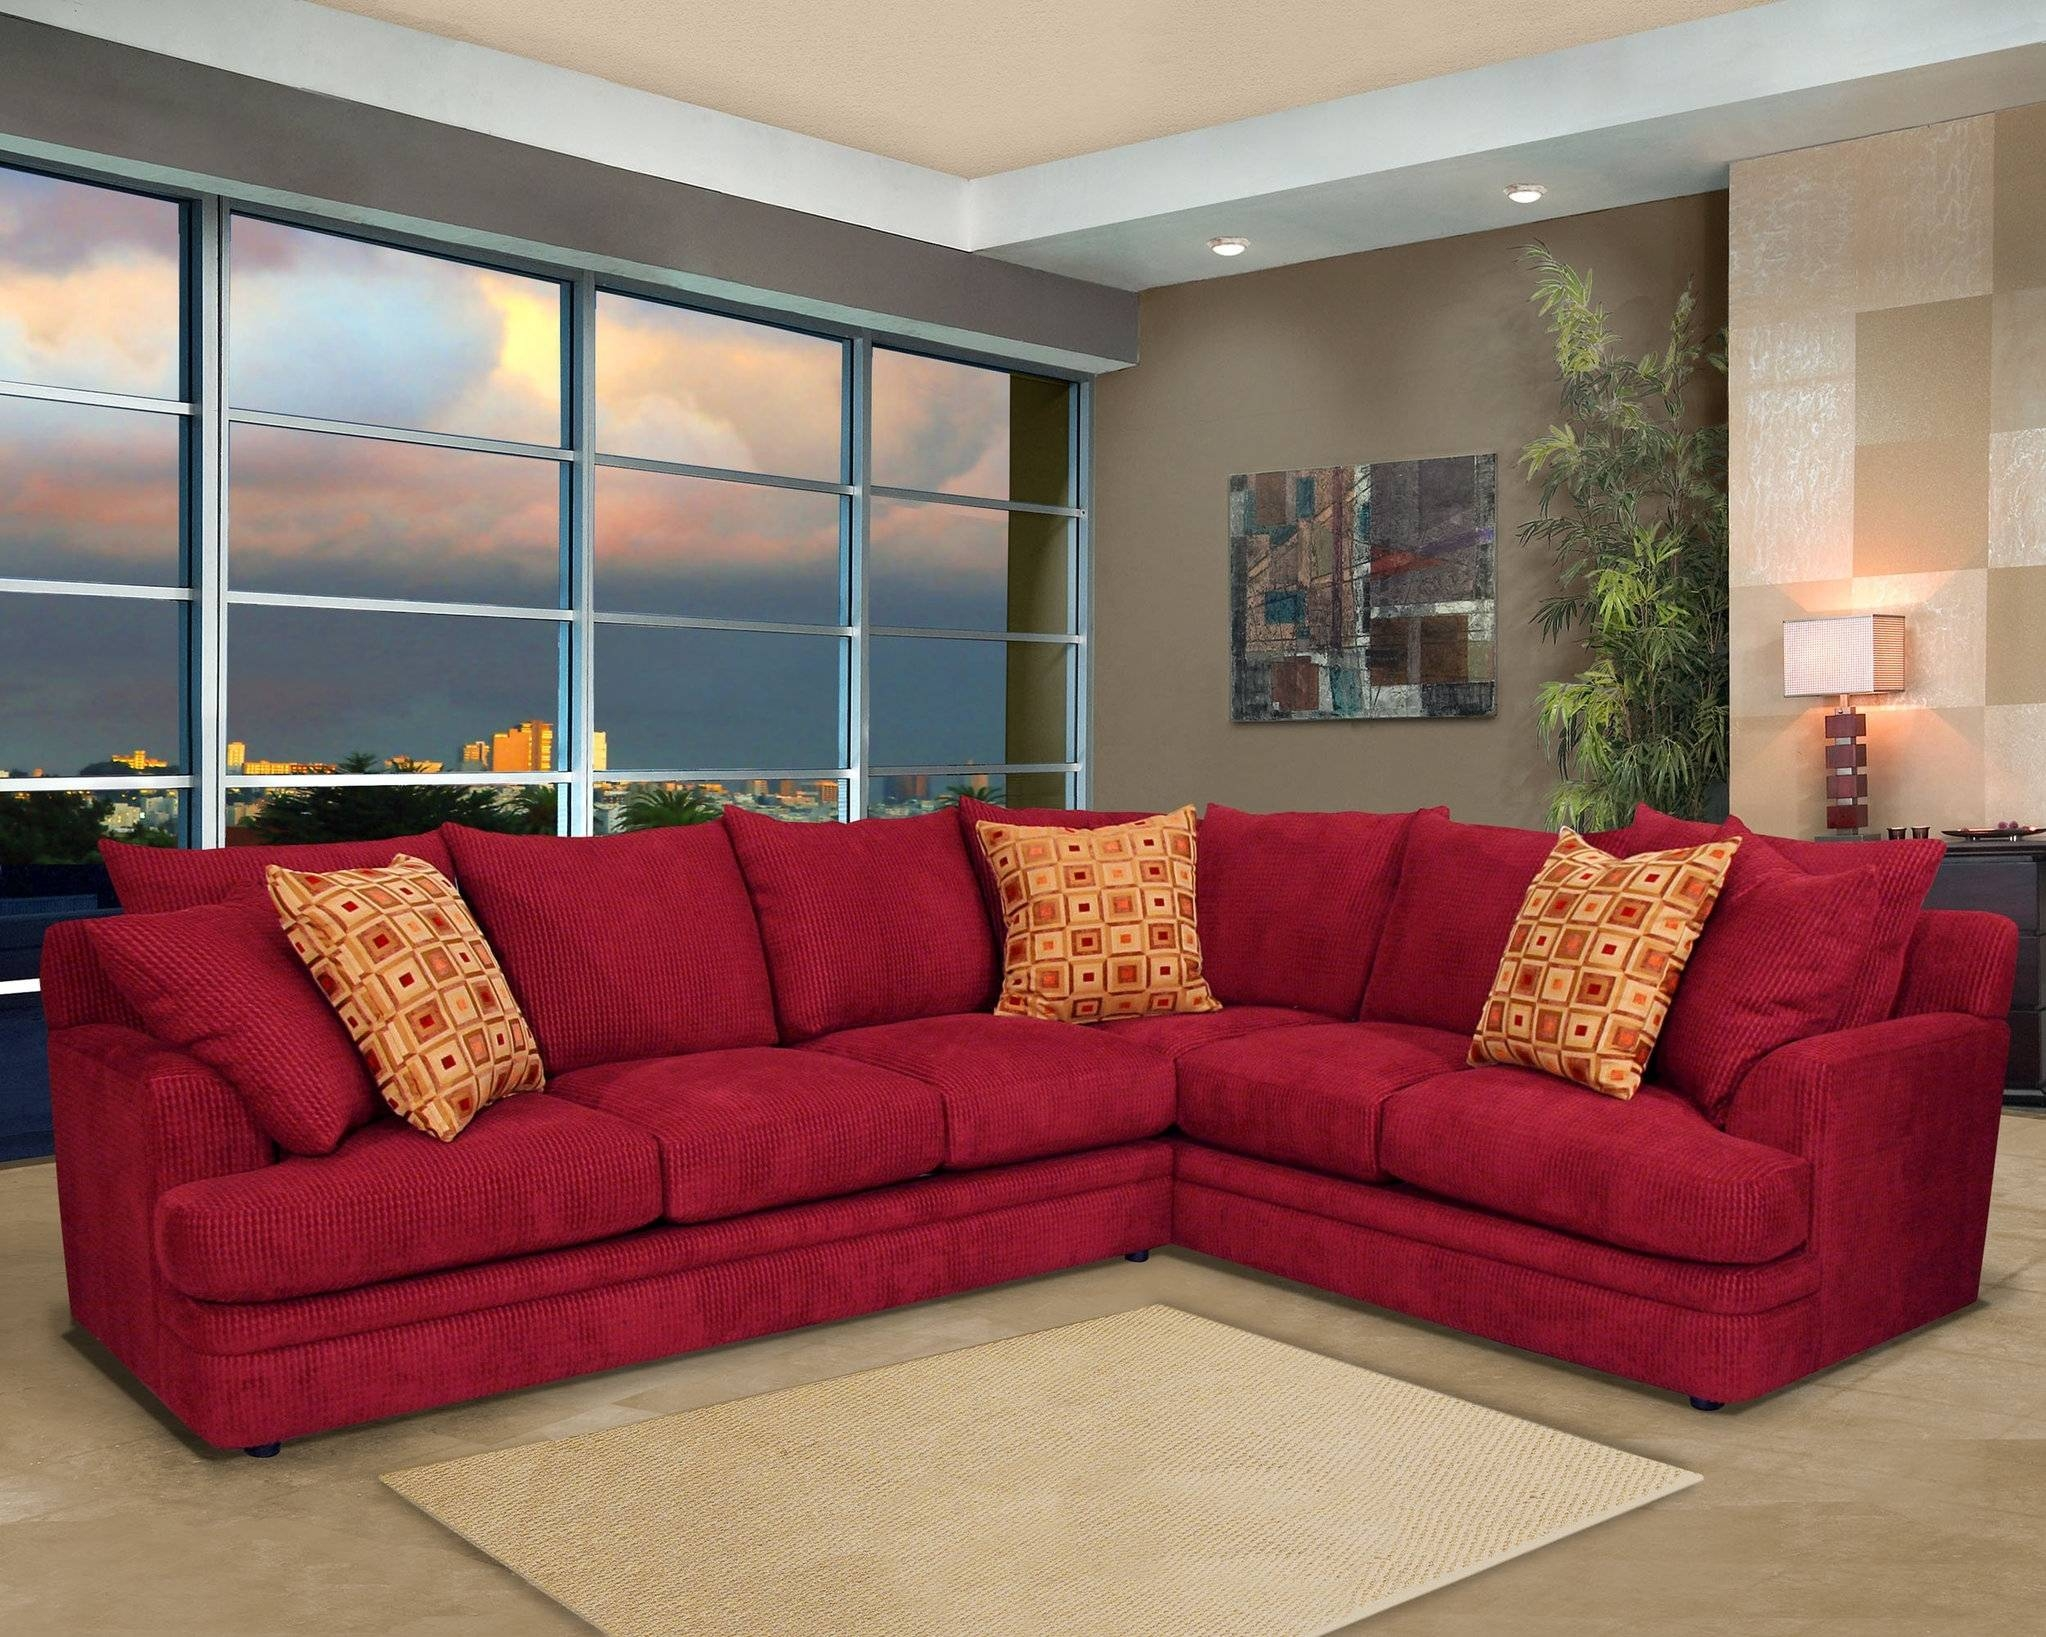 Furniture: Leather Sectional With Chaise | Oversized Sectional for Craftsman Sectional Sofa (Image 12 of 30)